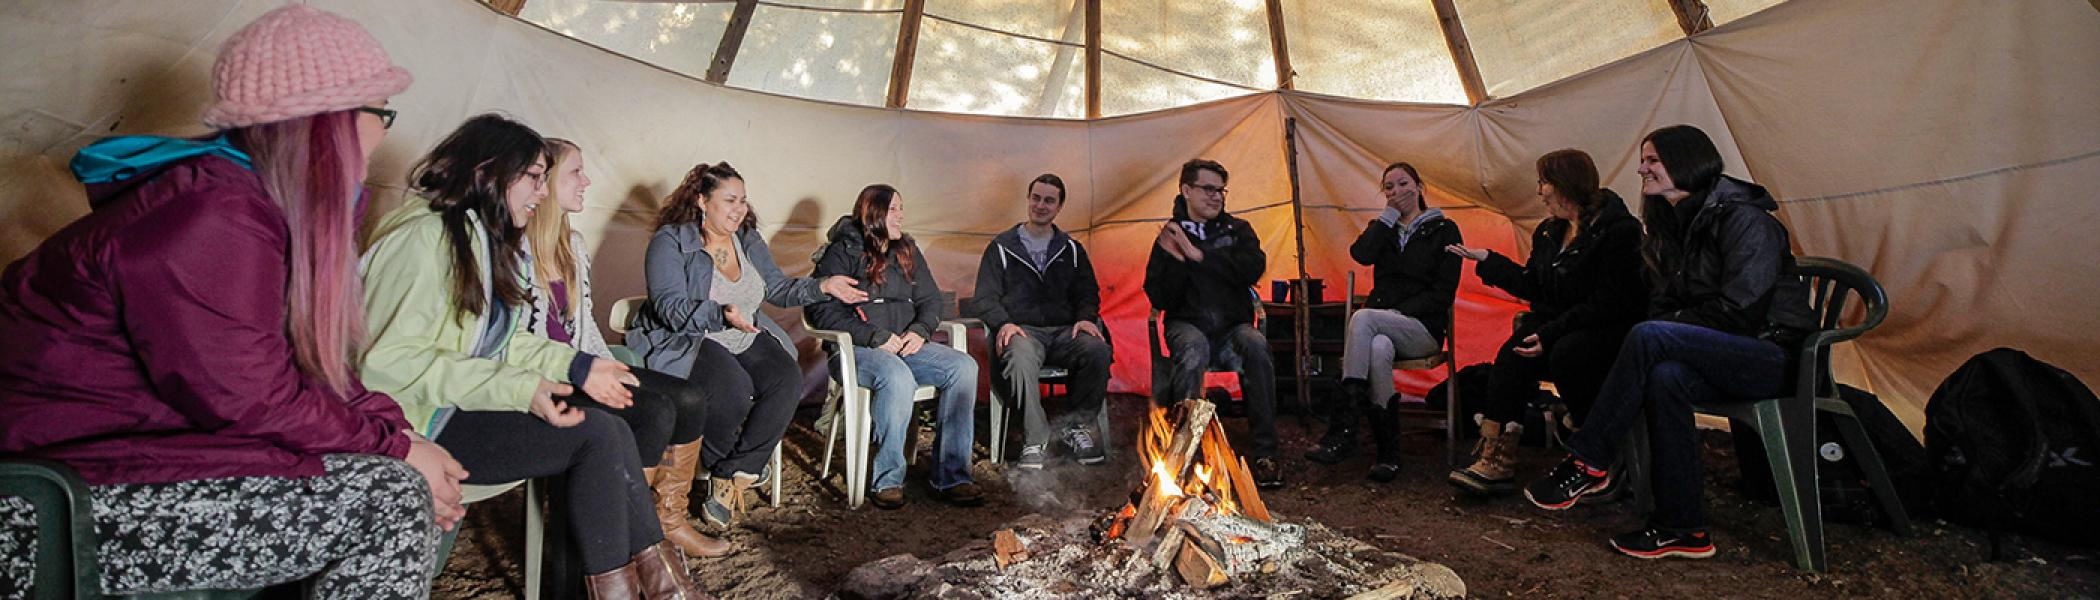 A group of people gather around a fire in a Tipi